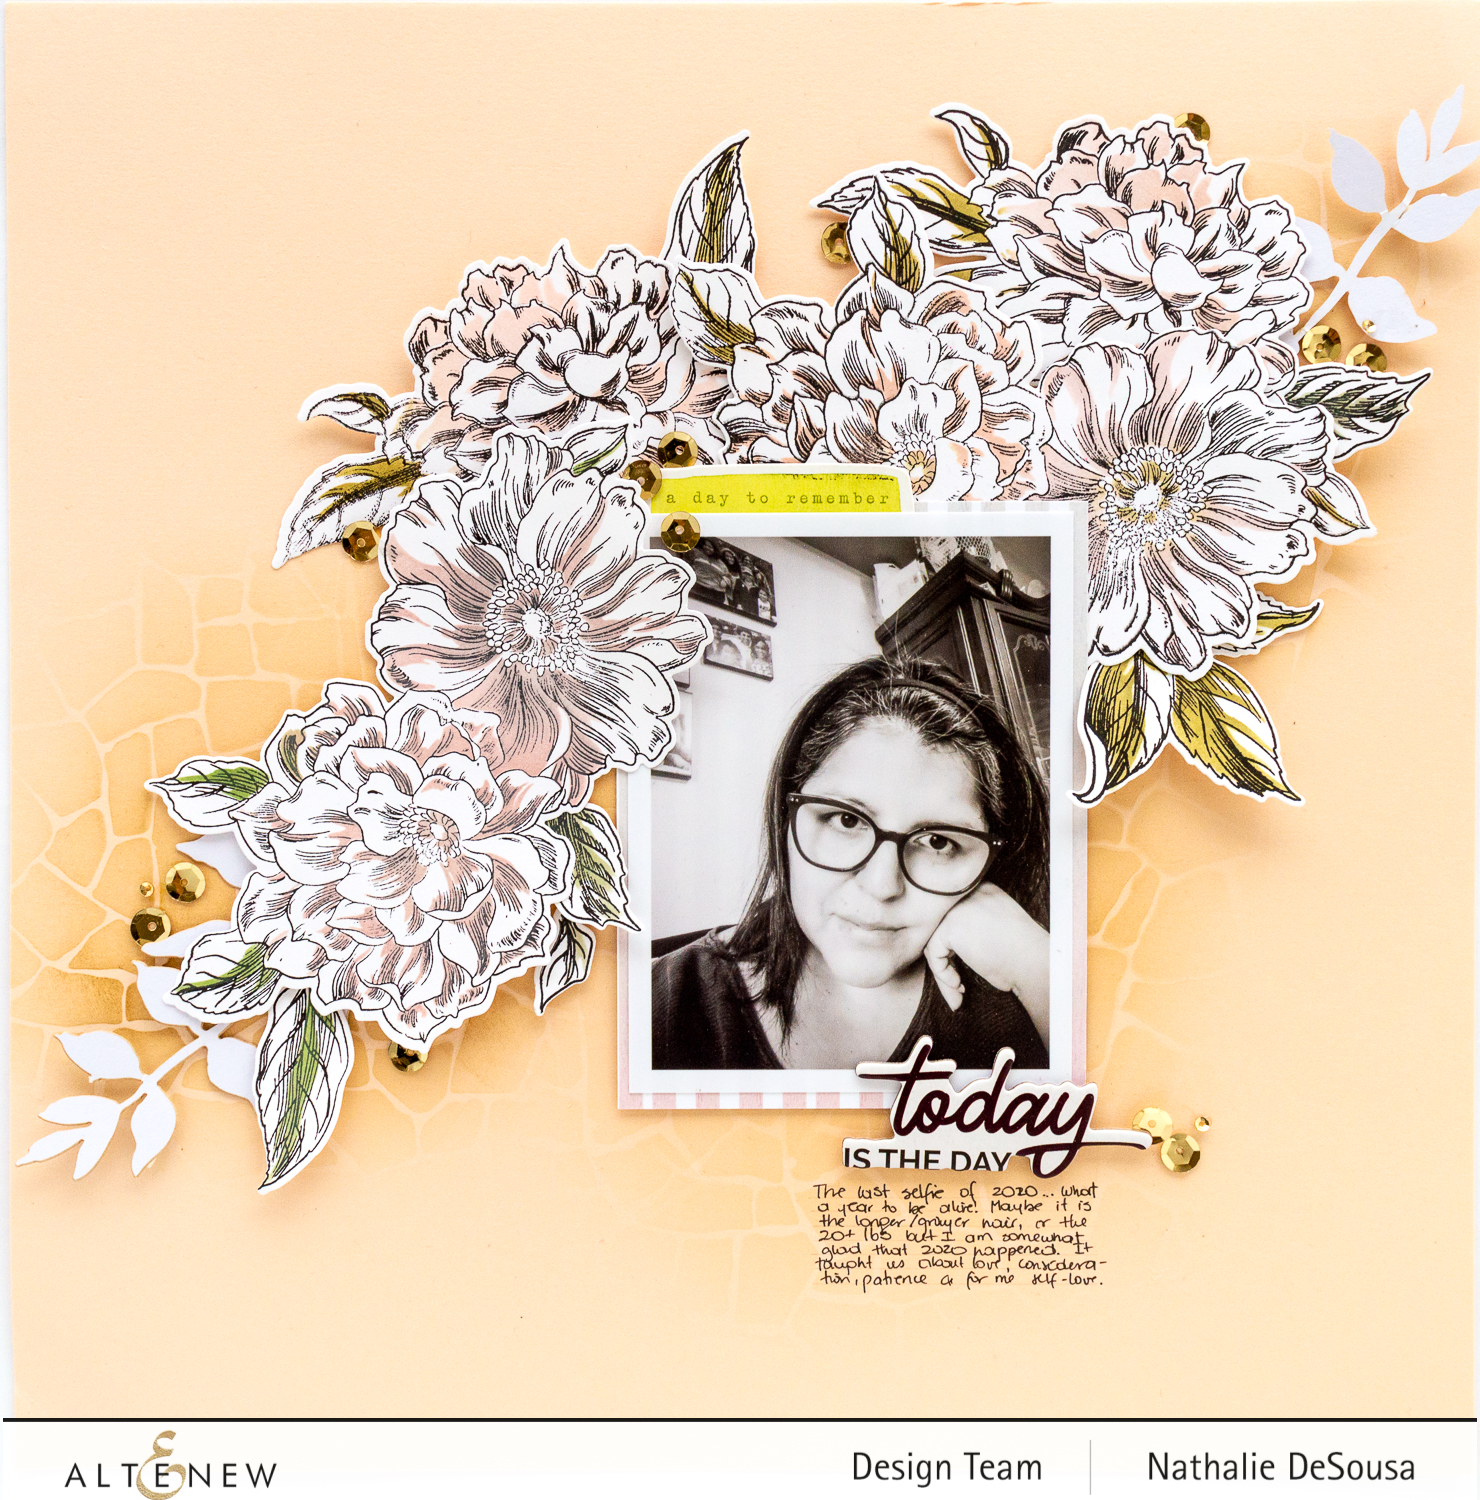 @altenew_ easy coloring techniques with VINTAGE GARDEN Stamp set by Nathalie DeSousa